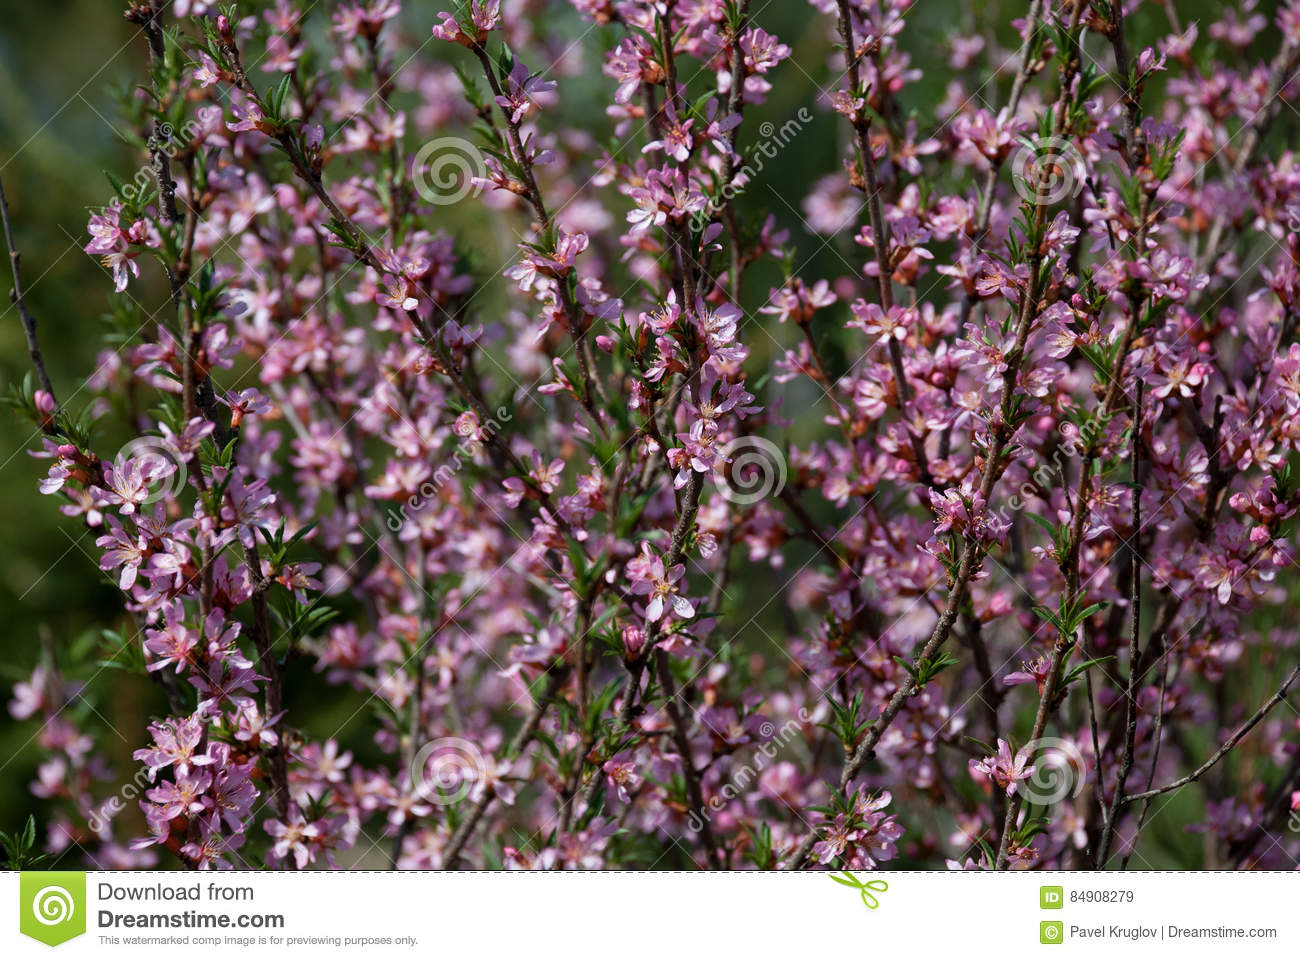 Large shrub with a scattering of small pink flowers stock image download large shrub with a scattering of small pink flowers stock image image of head mightylinksfo